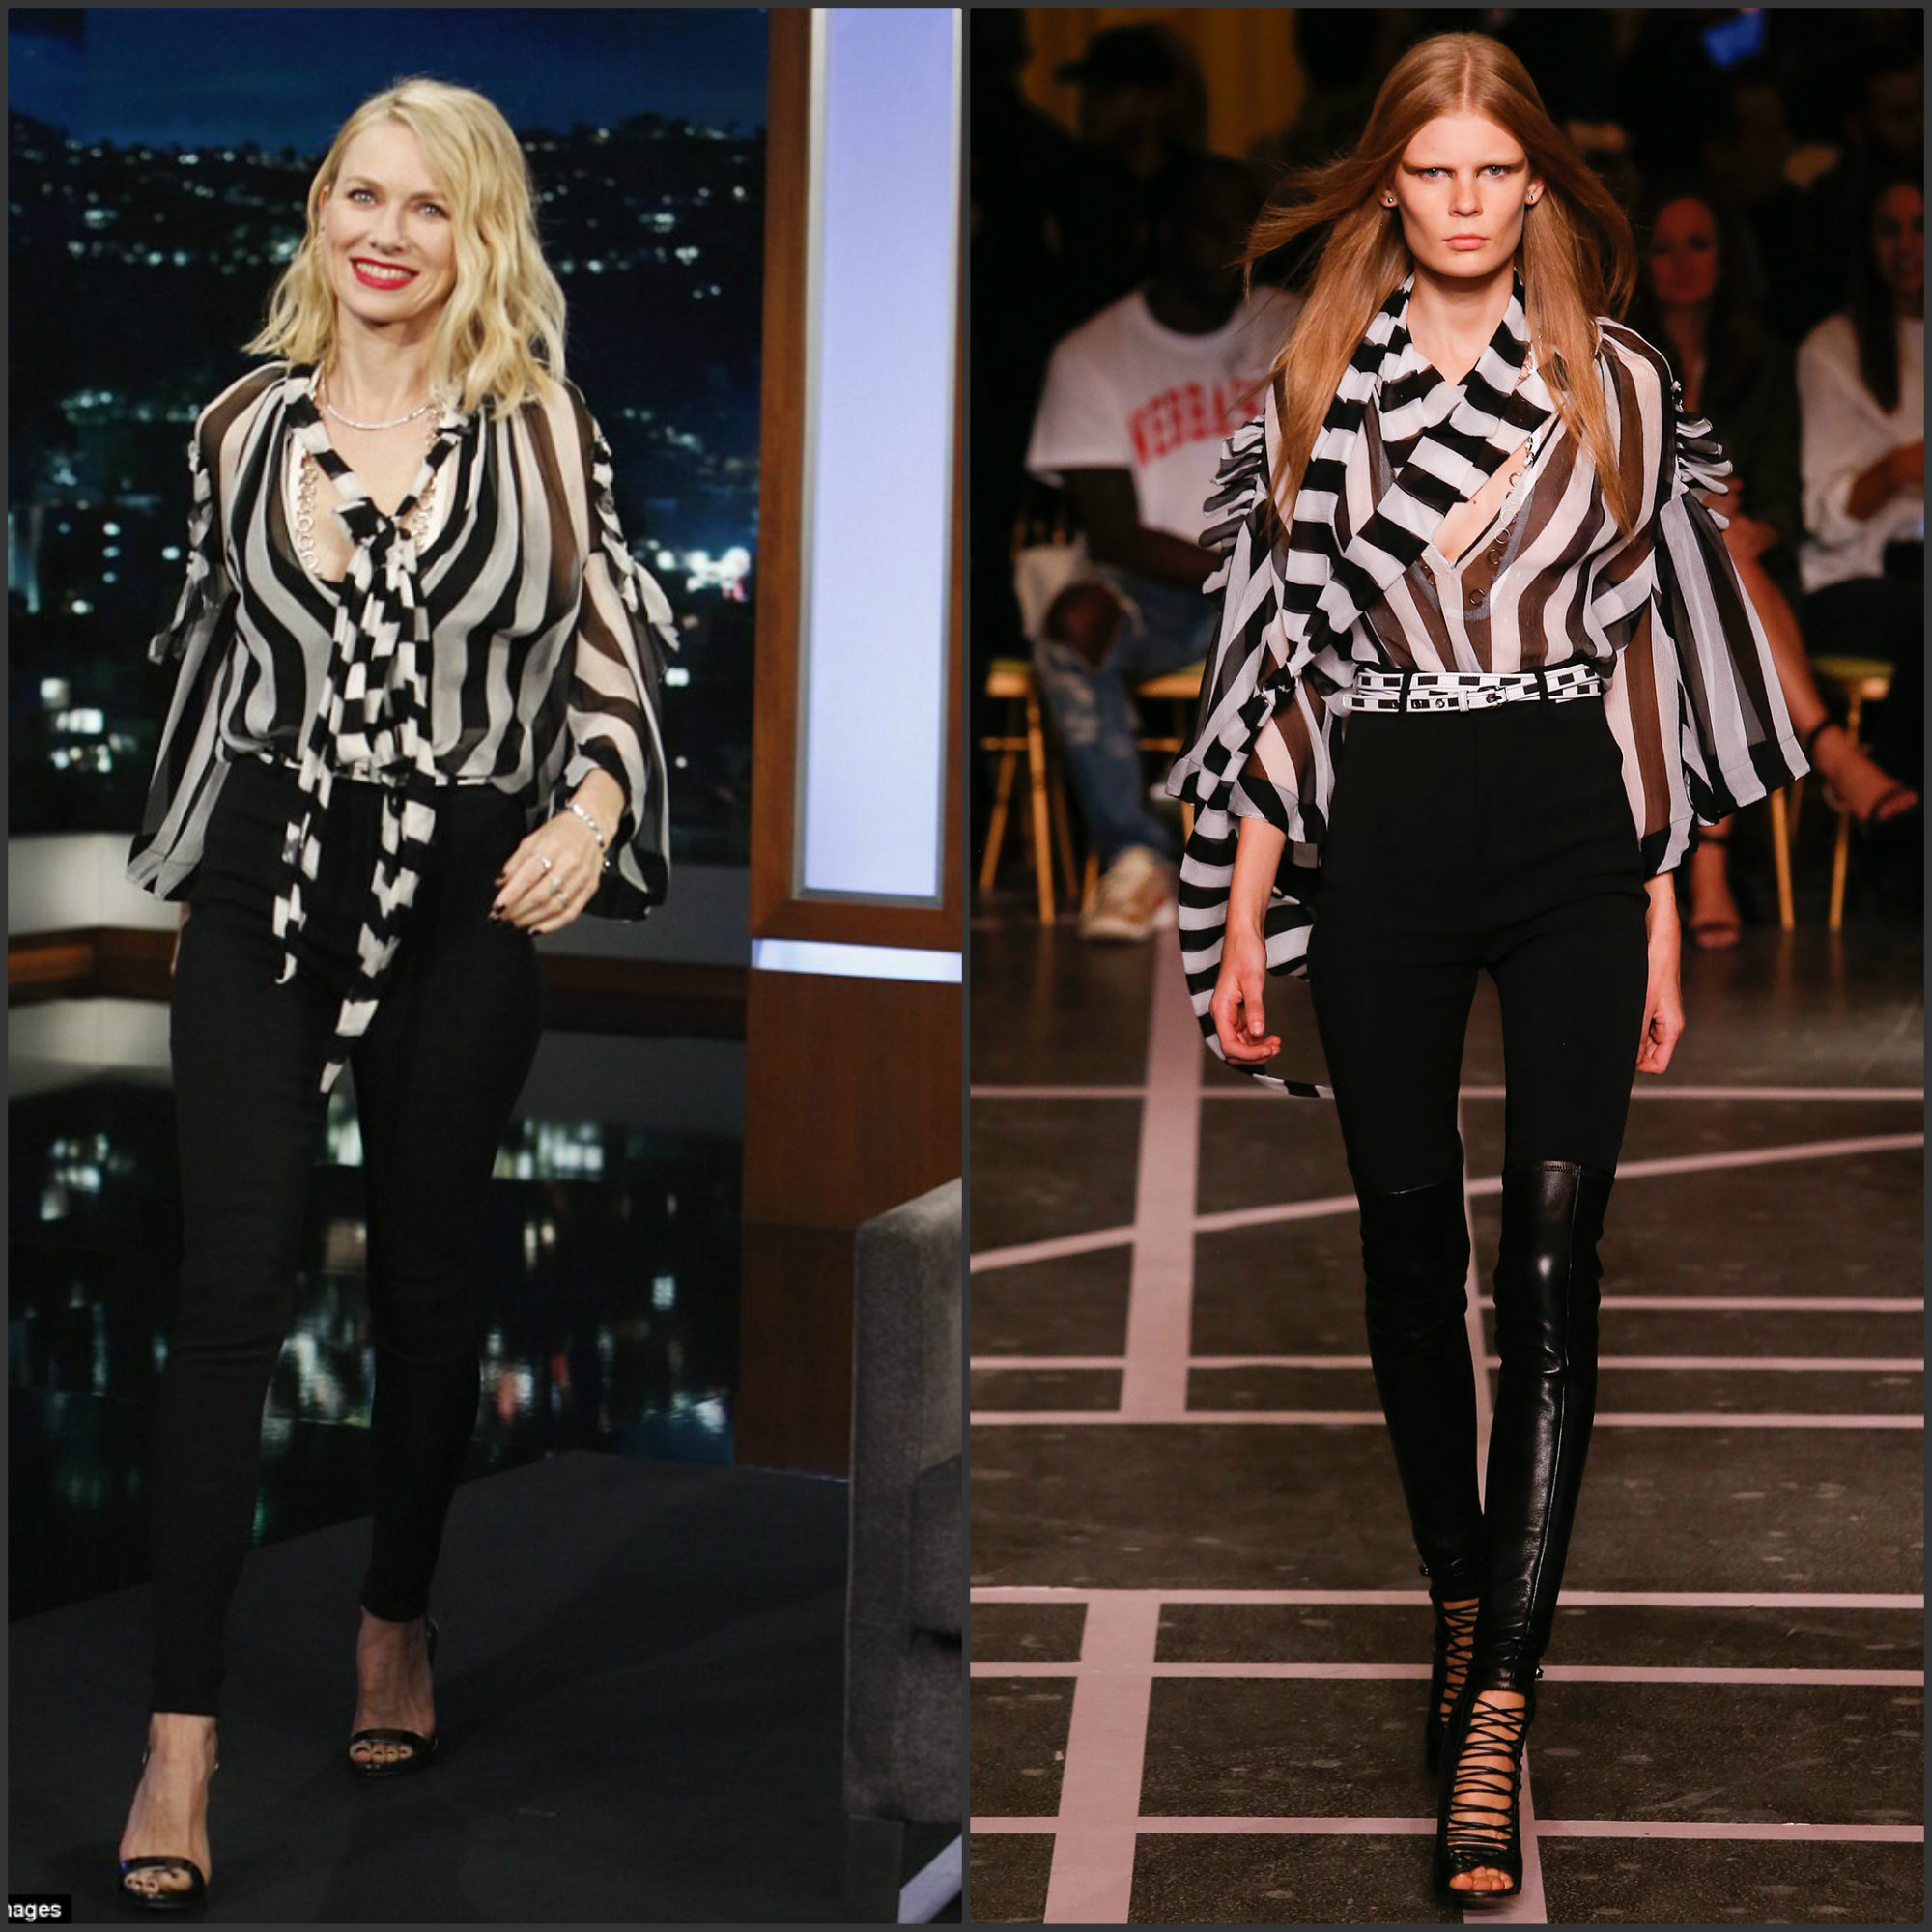 naomi-watts-in-givenchy-at-jimmy-kimmel-live